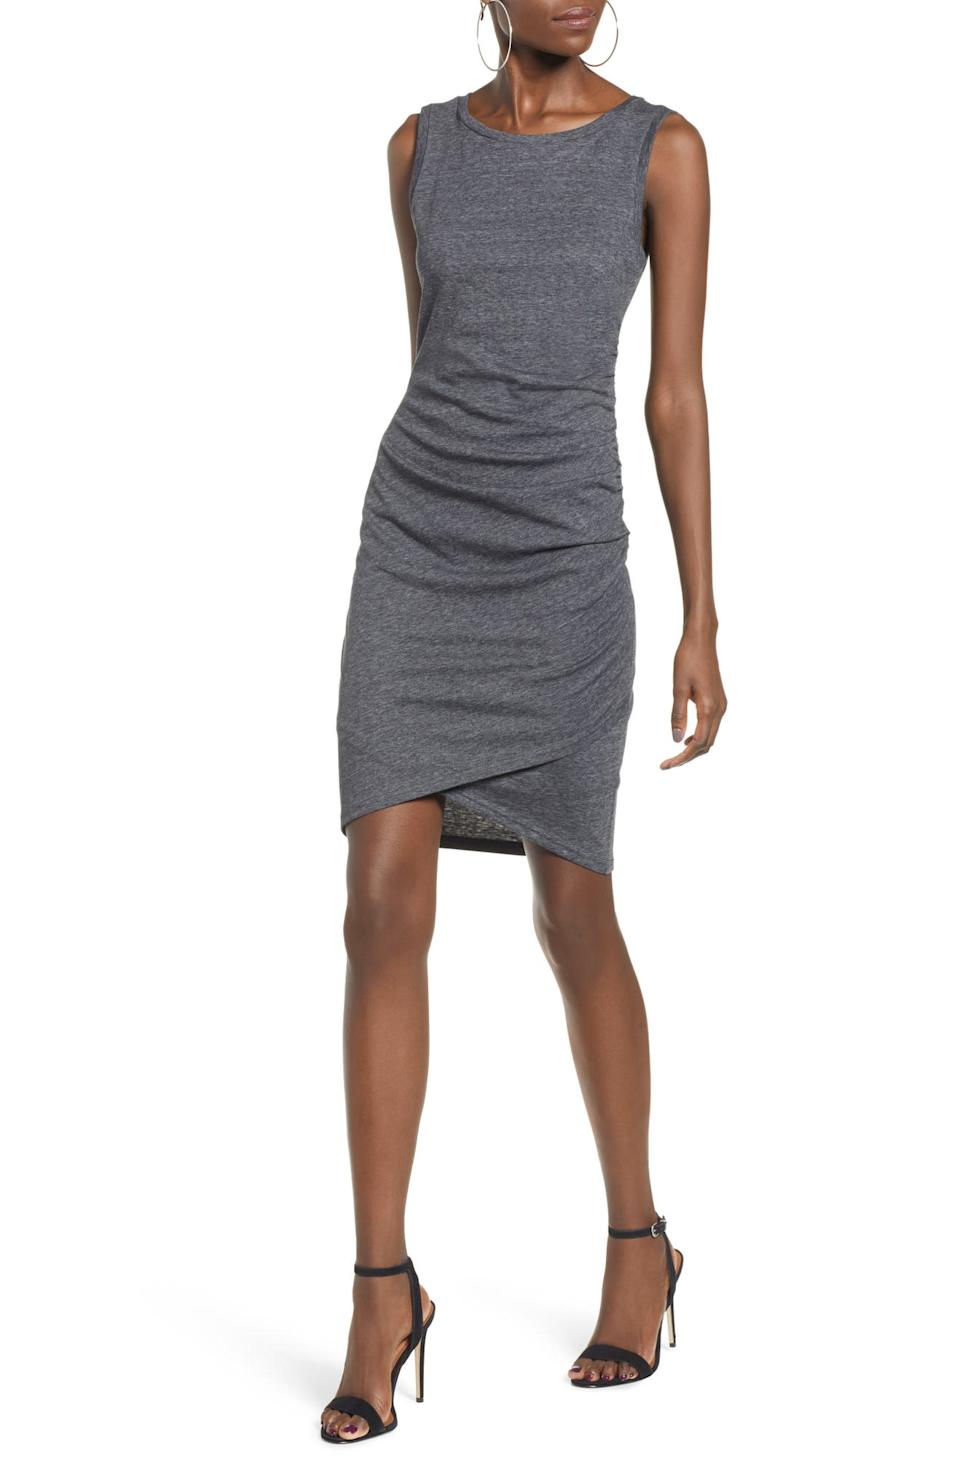 Leith Ruched Body-Con Tank Dress. Image via Nordstrom.